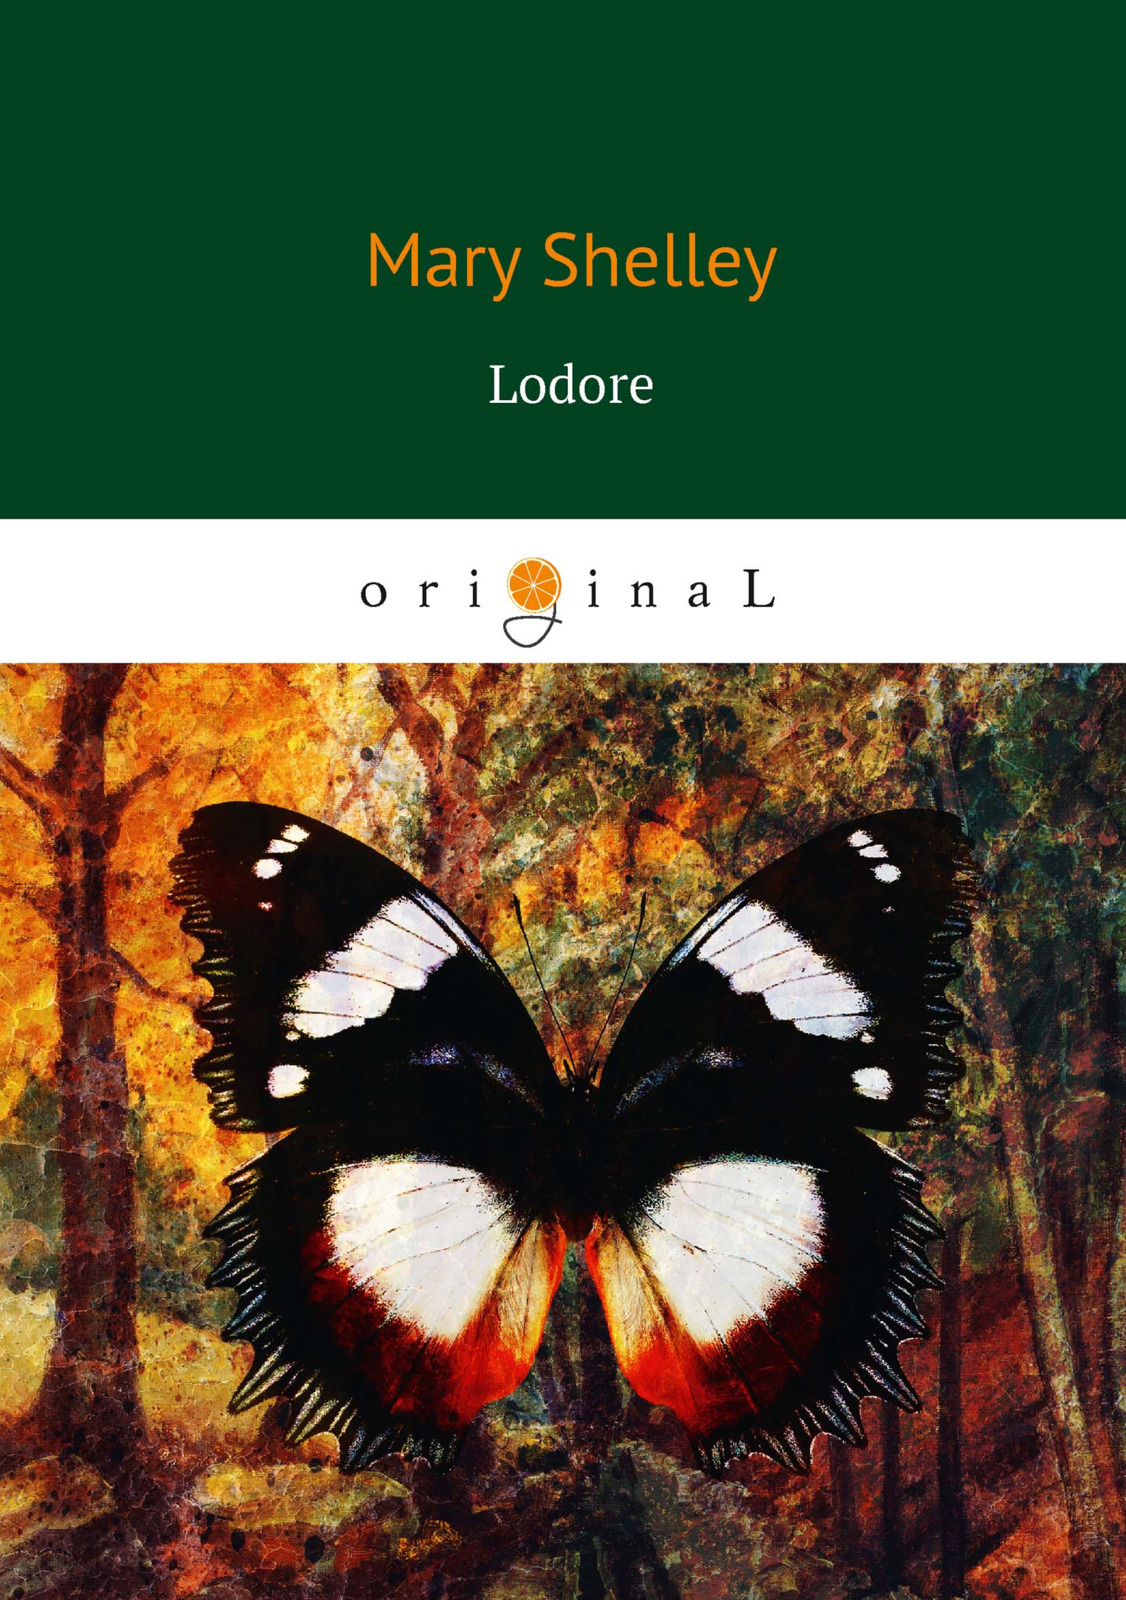 M. Shelley Lodore shelley mary lodore